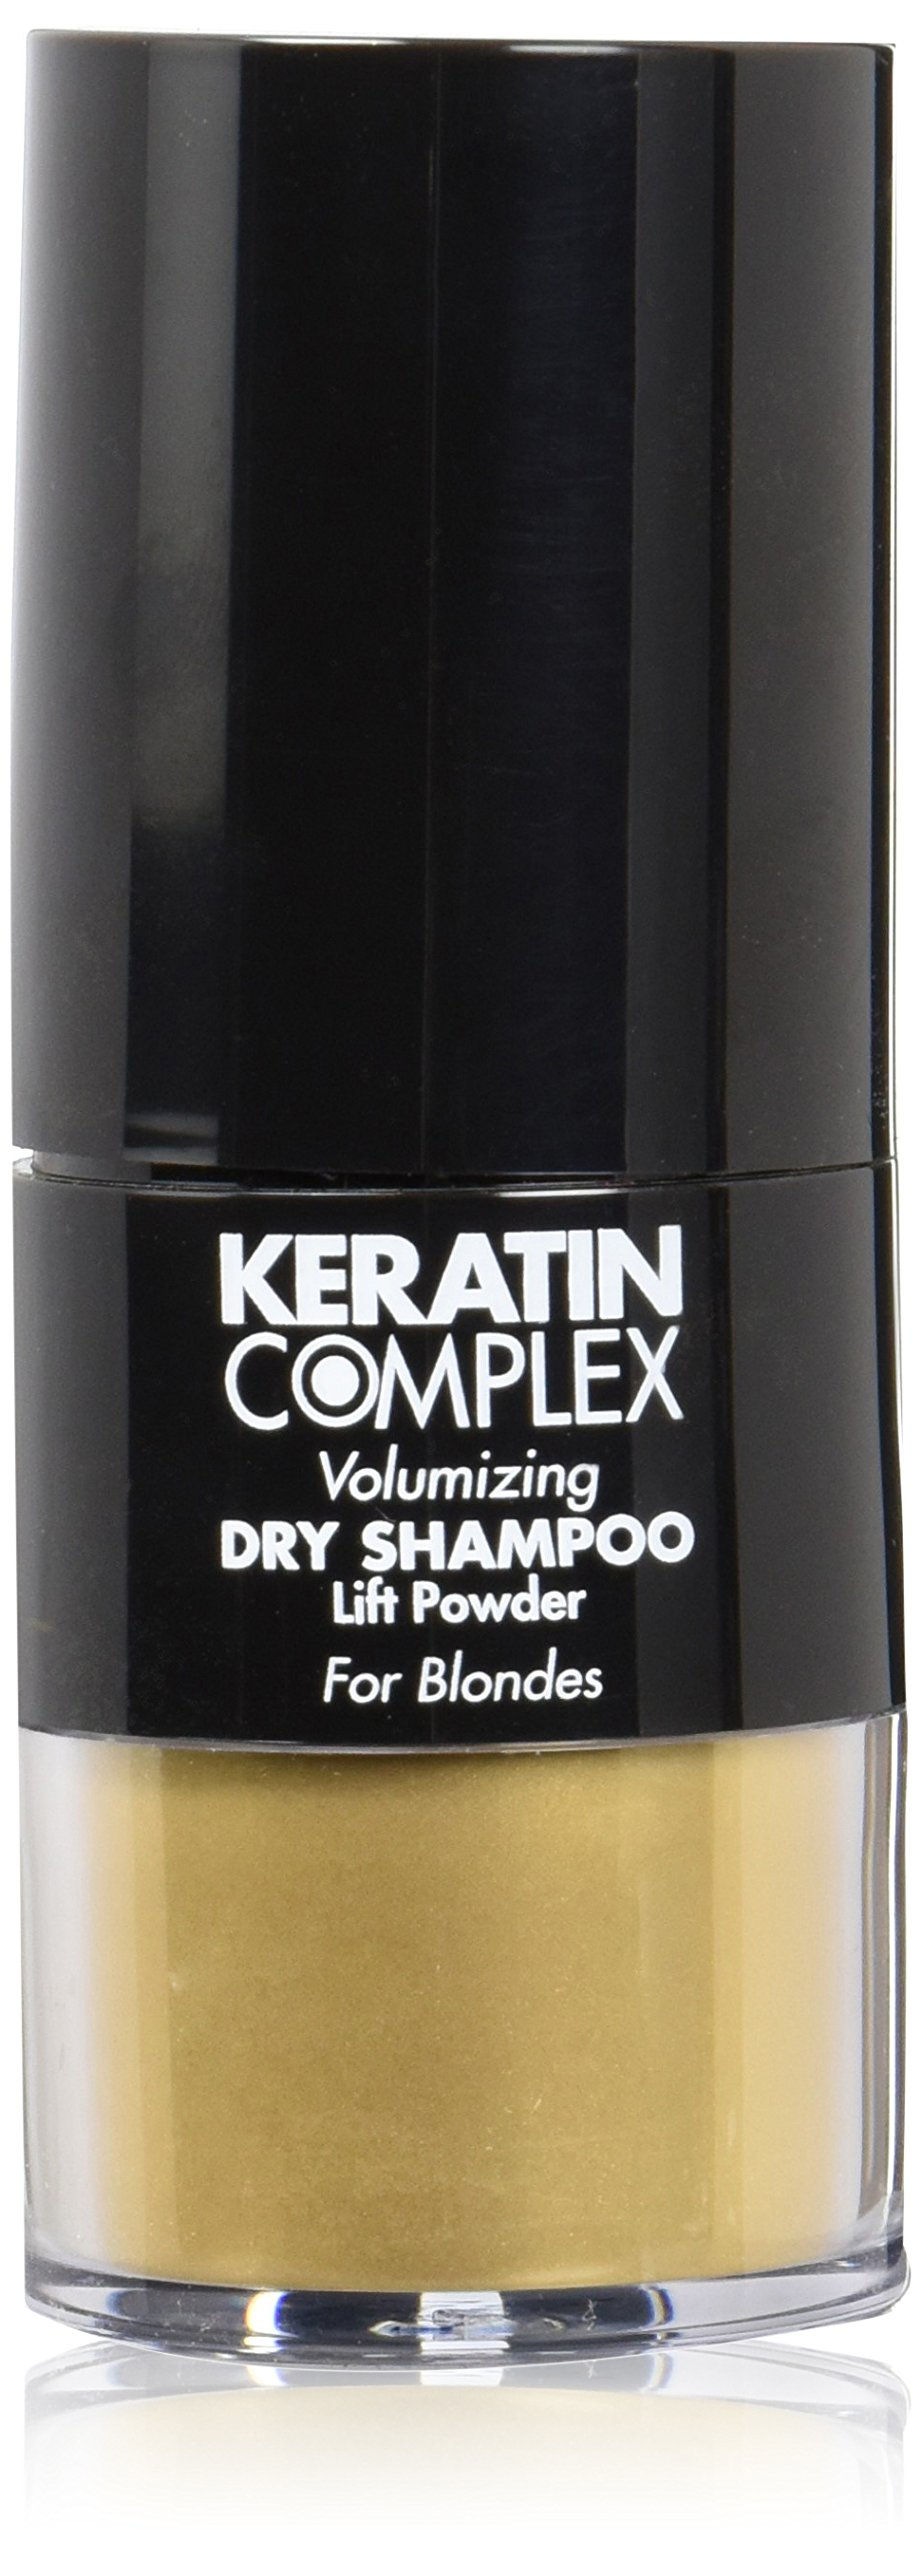 Amazon.com: Keratin Complex Volumizing Dry Shampoo Lift